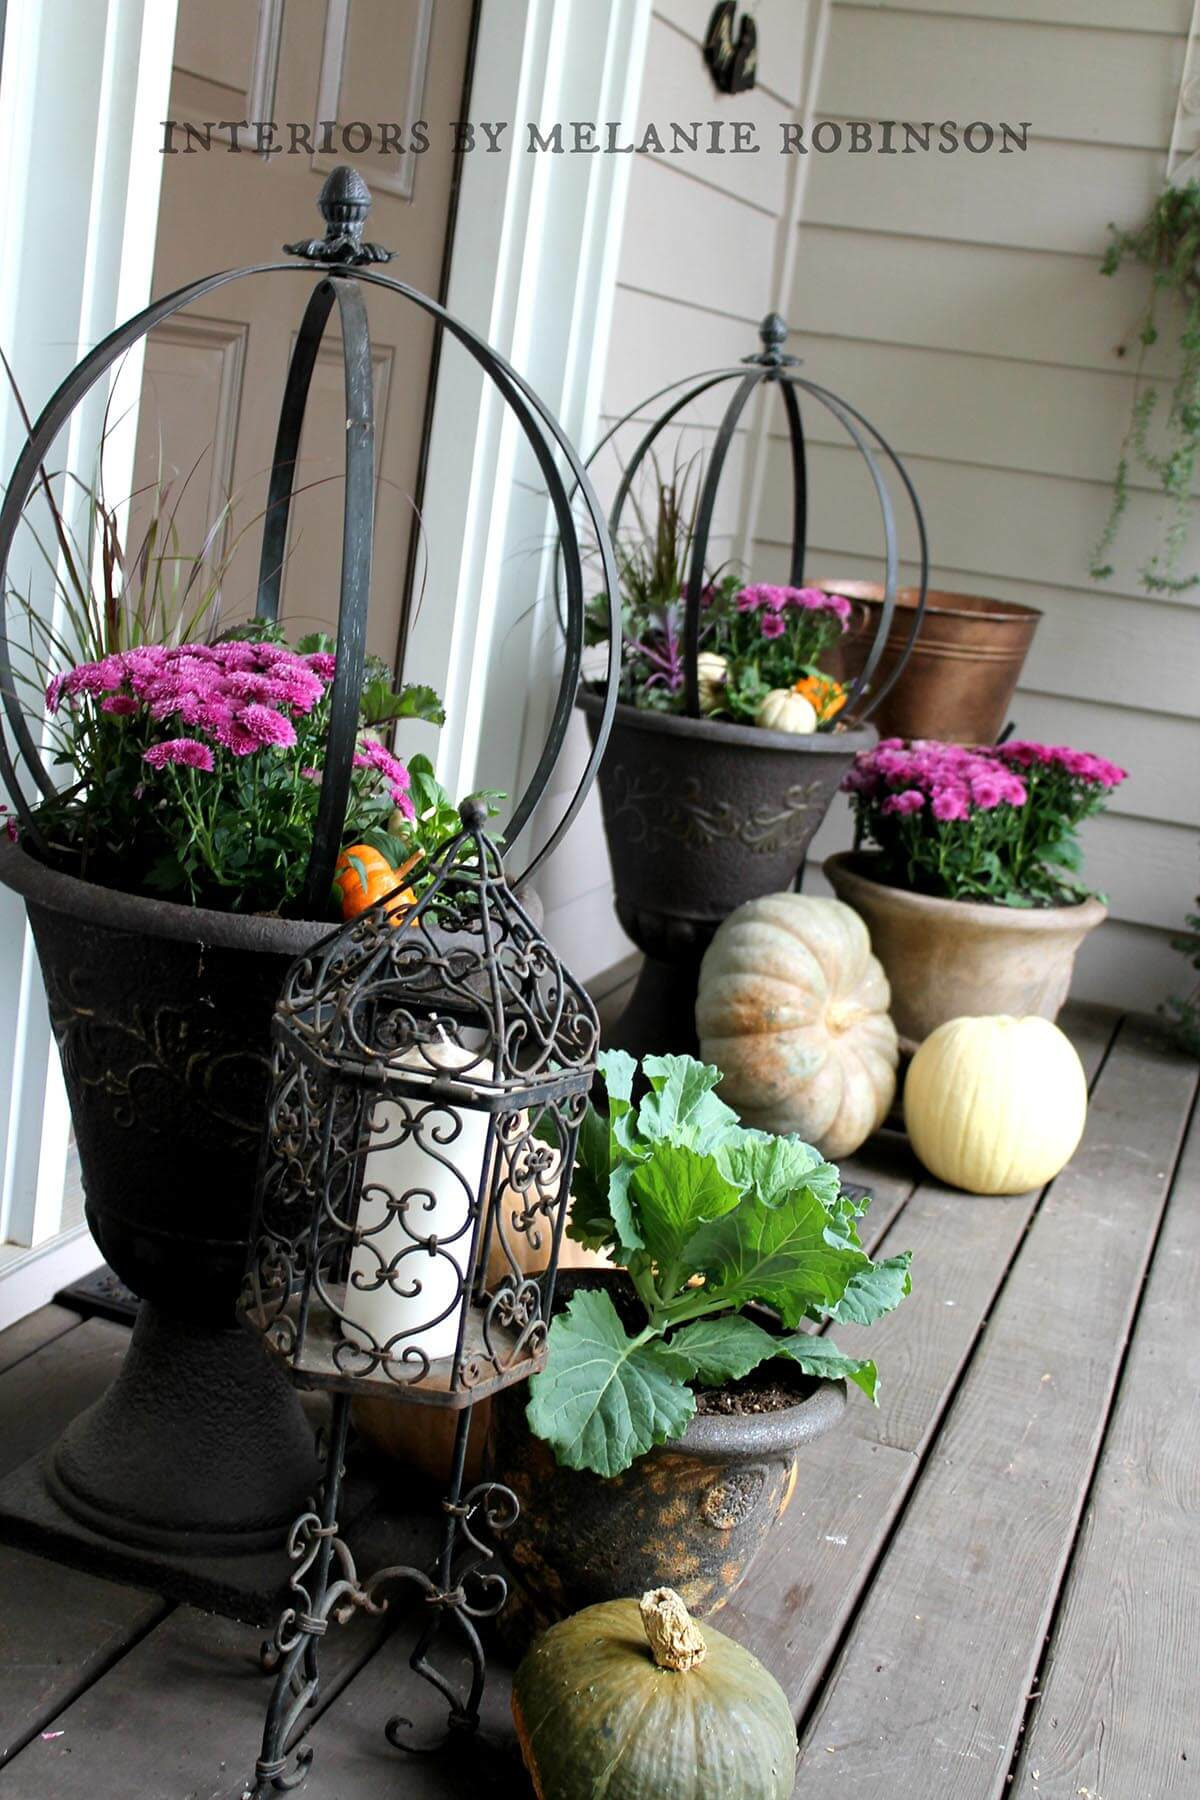 10 Simple Porch Inspirations for Rugged Homes| Porch Decor, Rustic Porch Ideas, Fast Porch Ideas, How to Decorate Your Porch Fast, Rugged Porch Inspirations, Porch and Patio Inspiration, Popular Pin